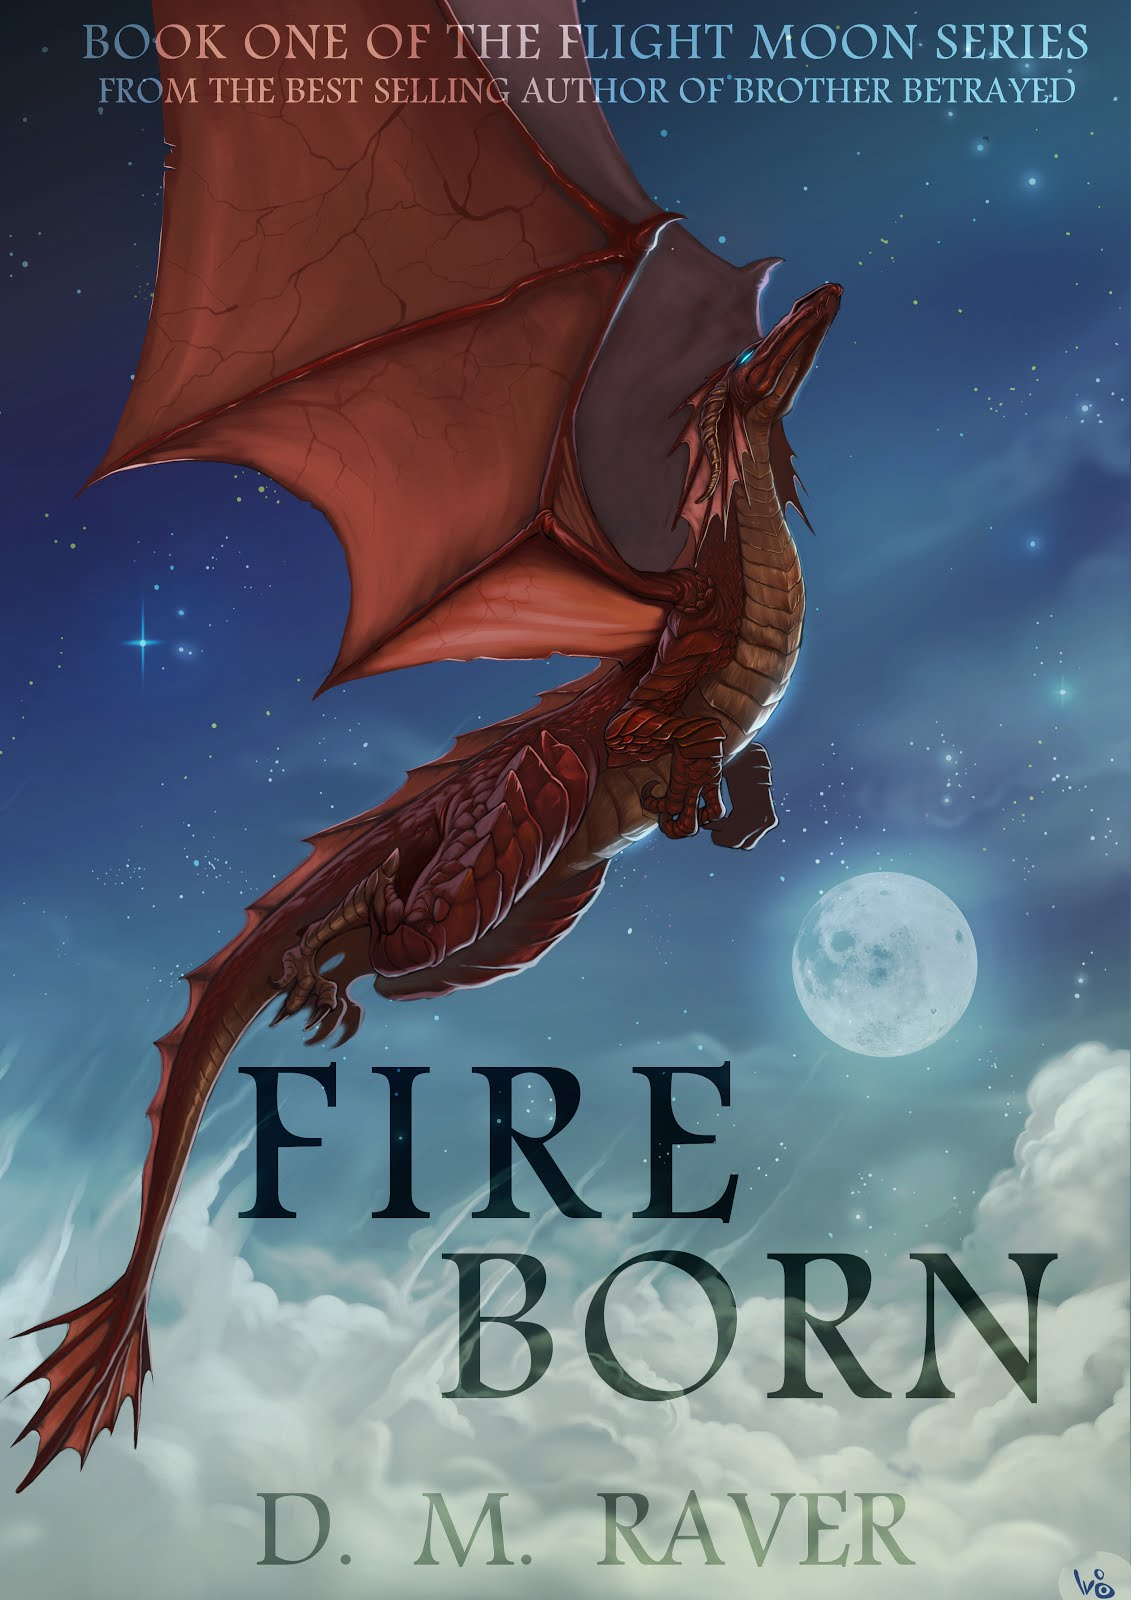 Book One: Fire Born